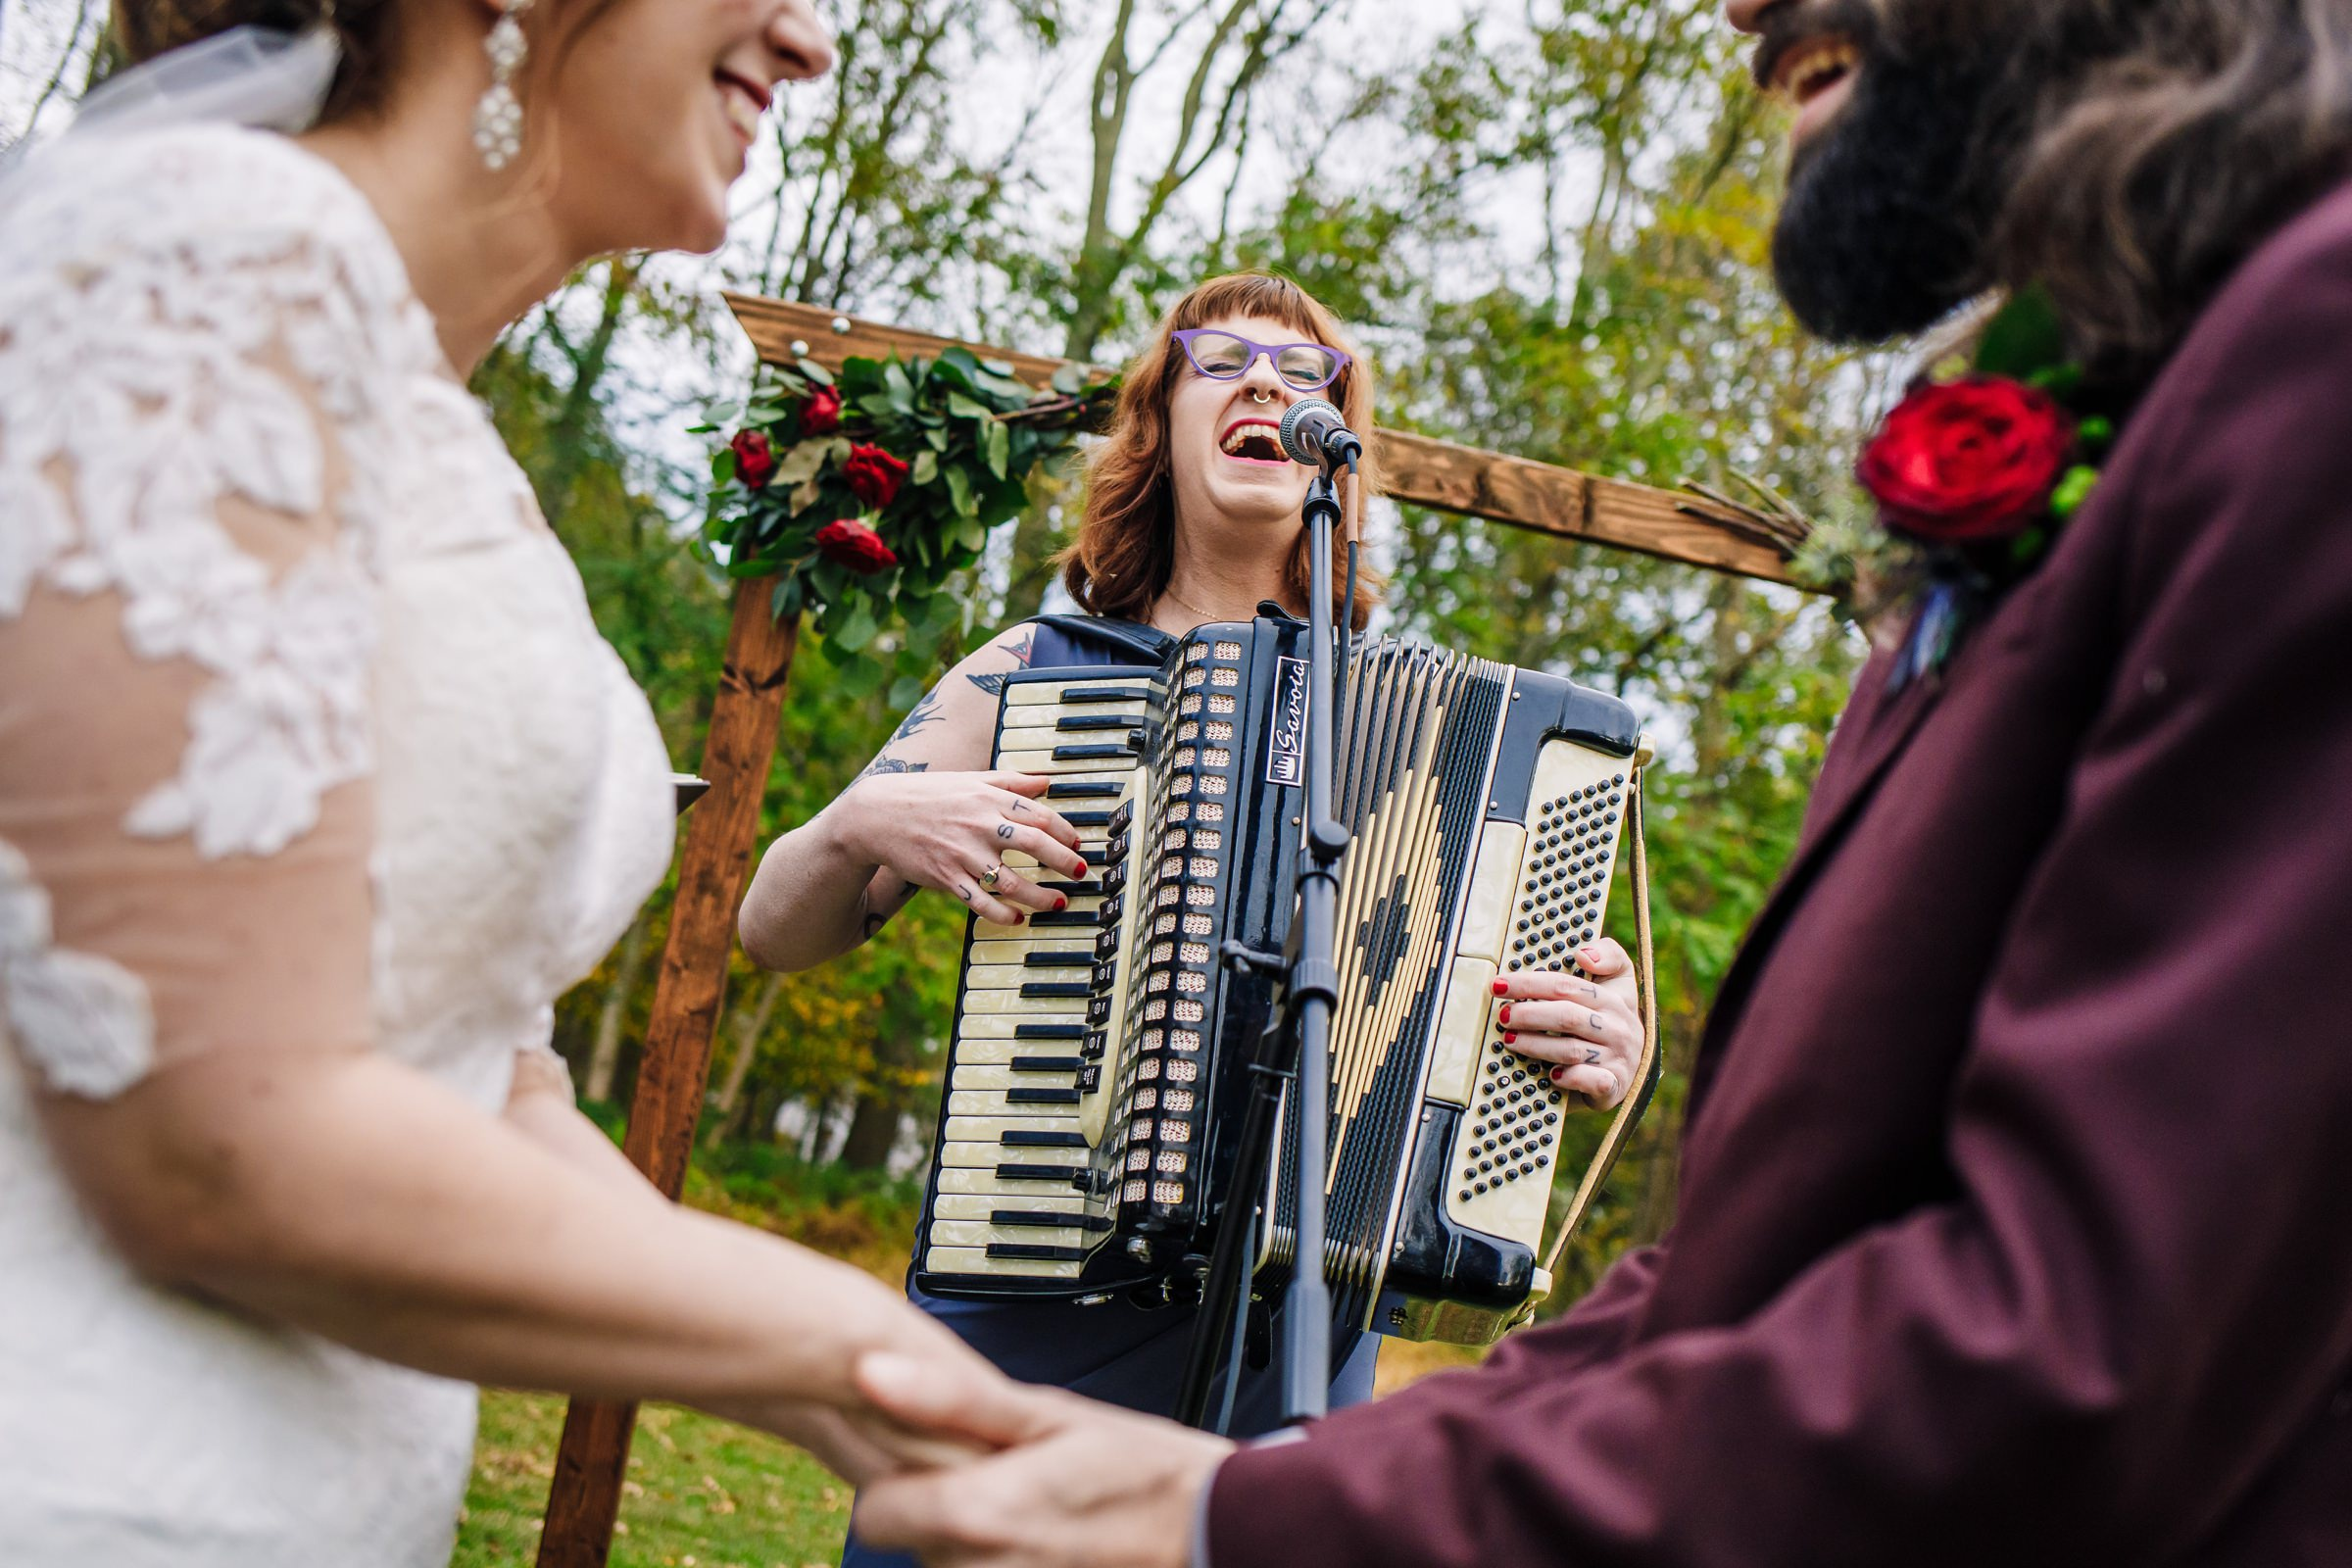 accordion-player-sings-during-ceremony-photo-by-photography-by-brea